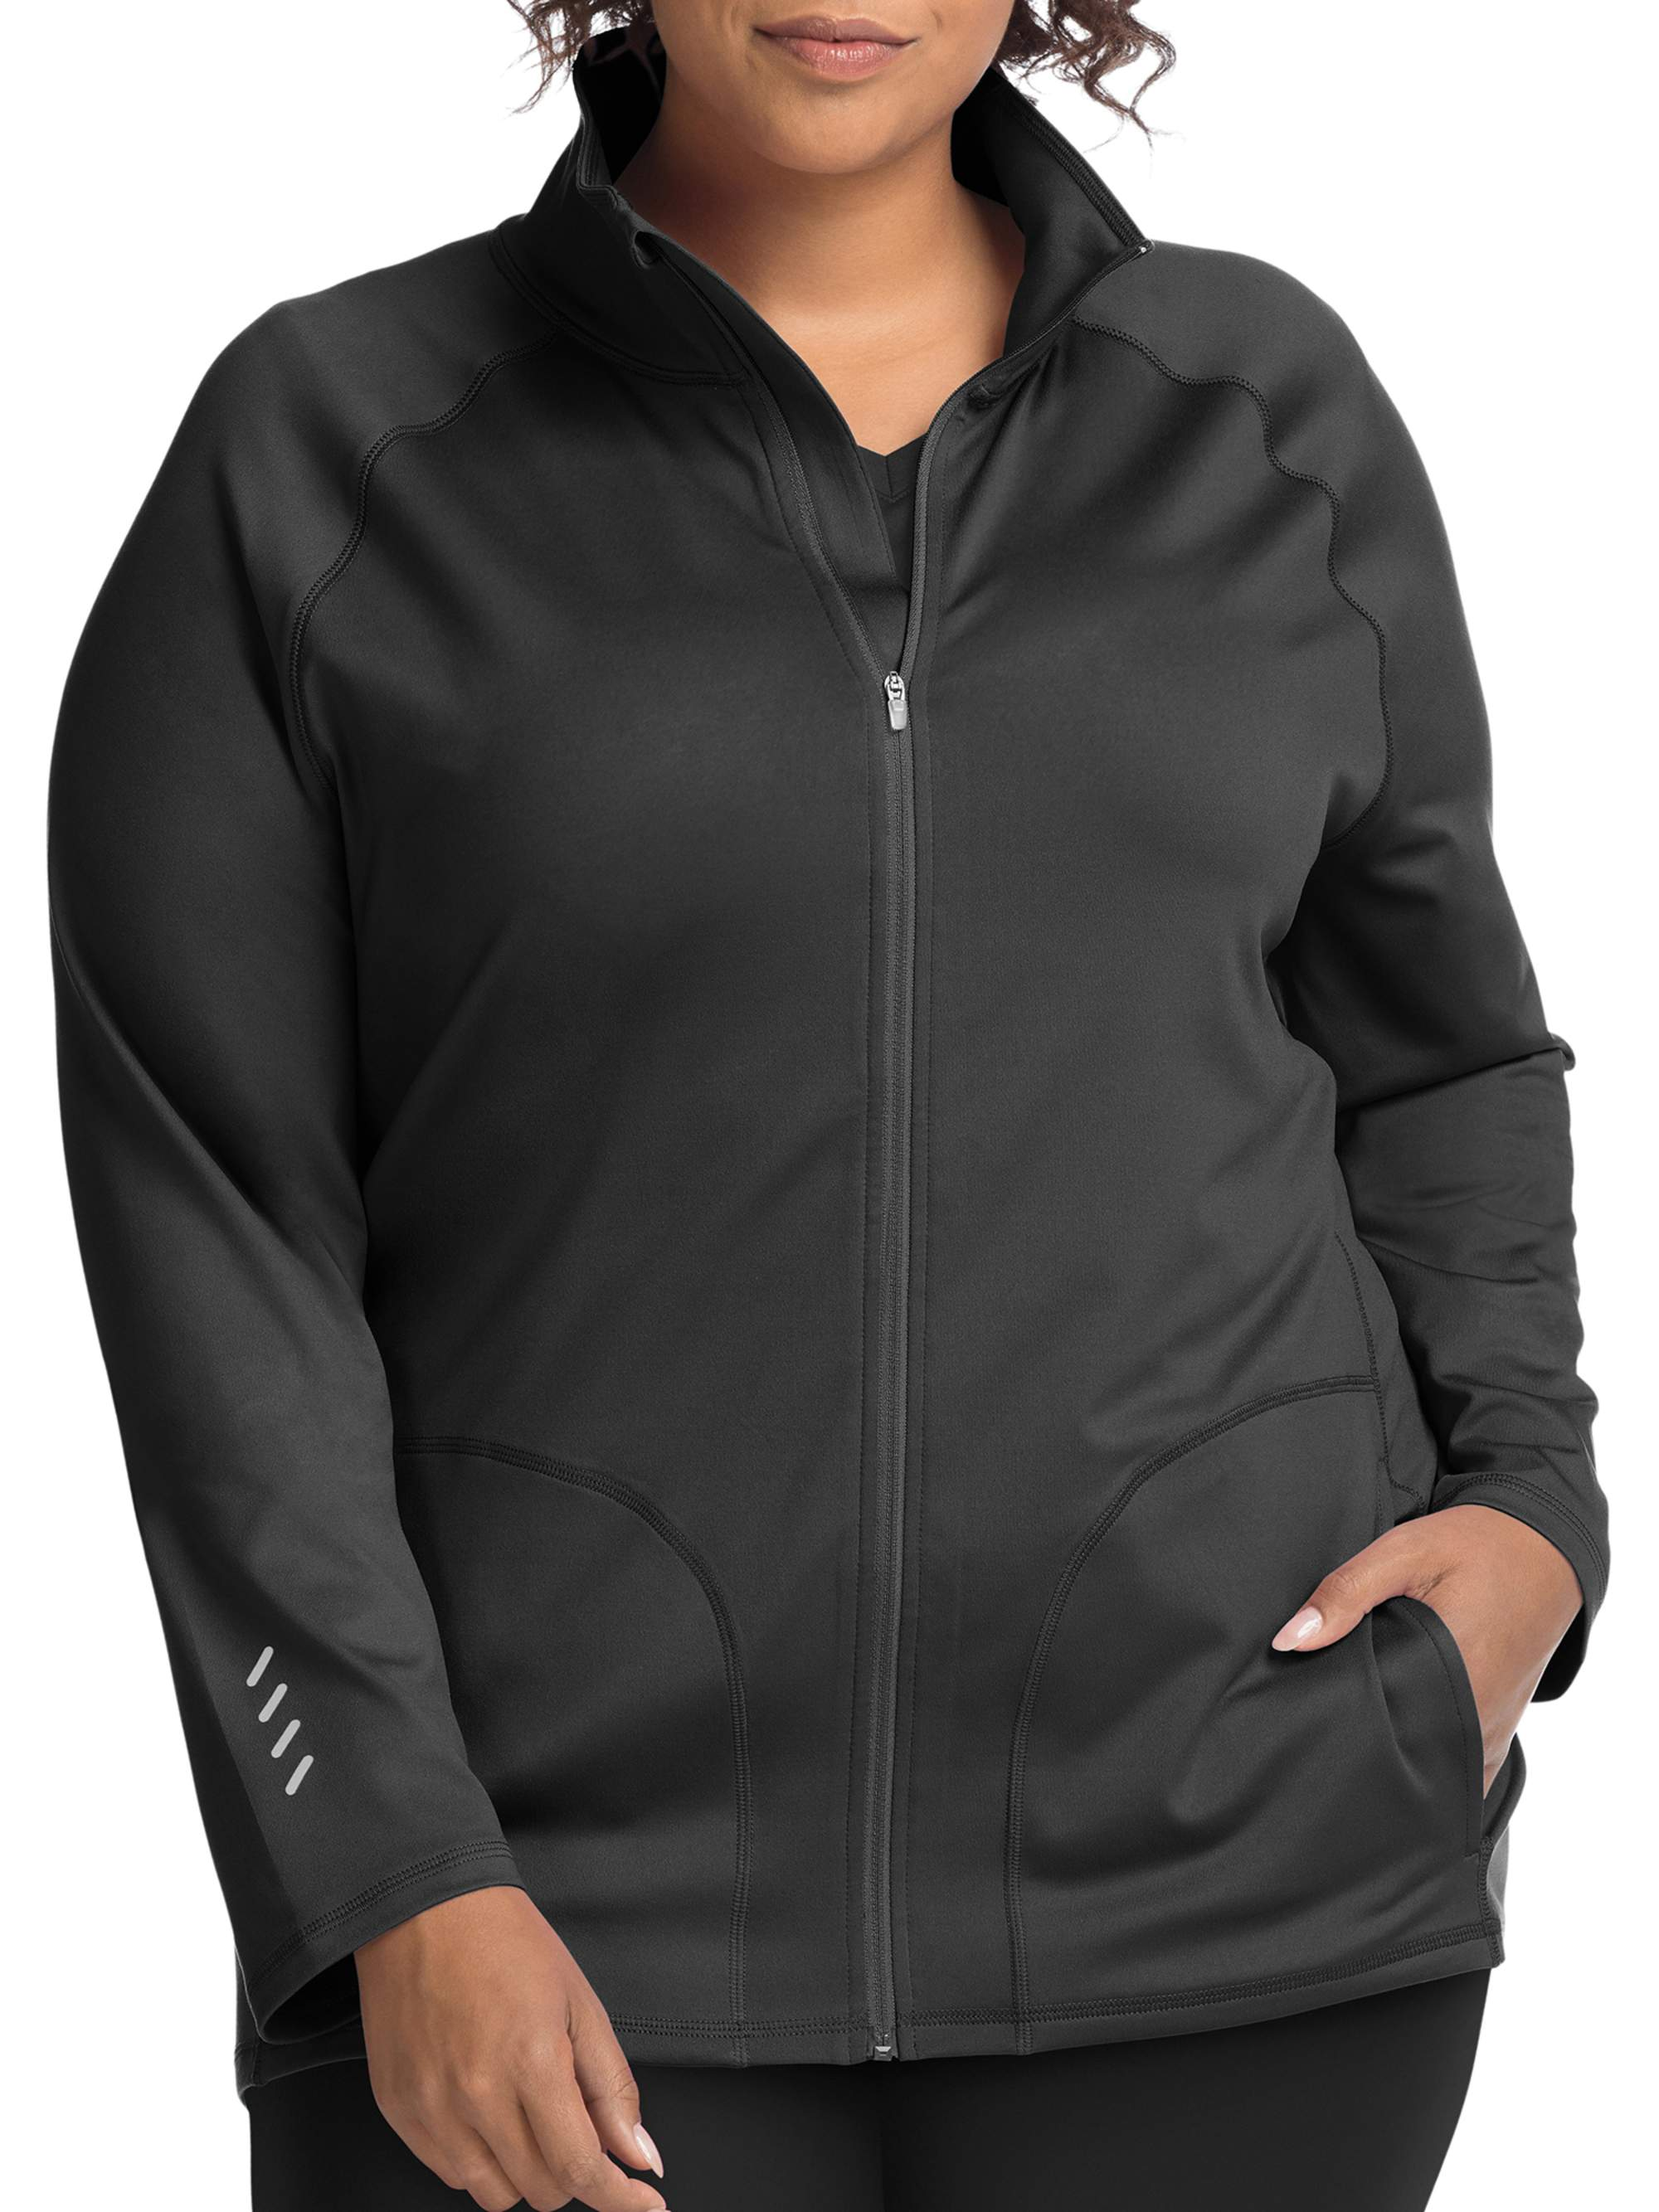 Just My Size Active Full Zip Mock Neck Jacket